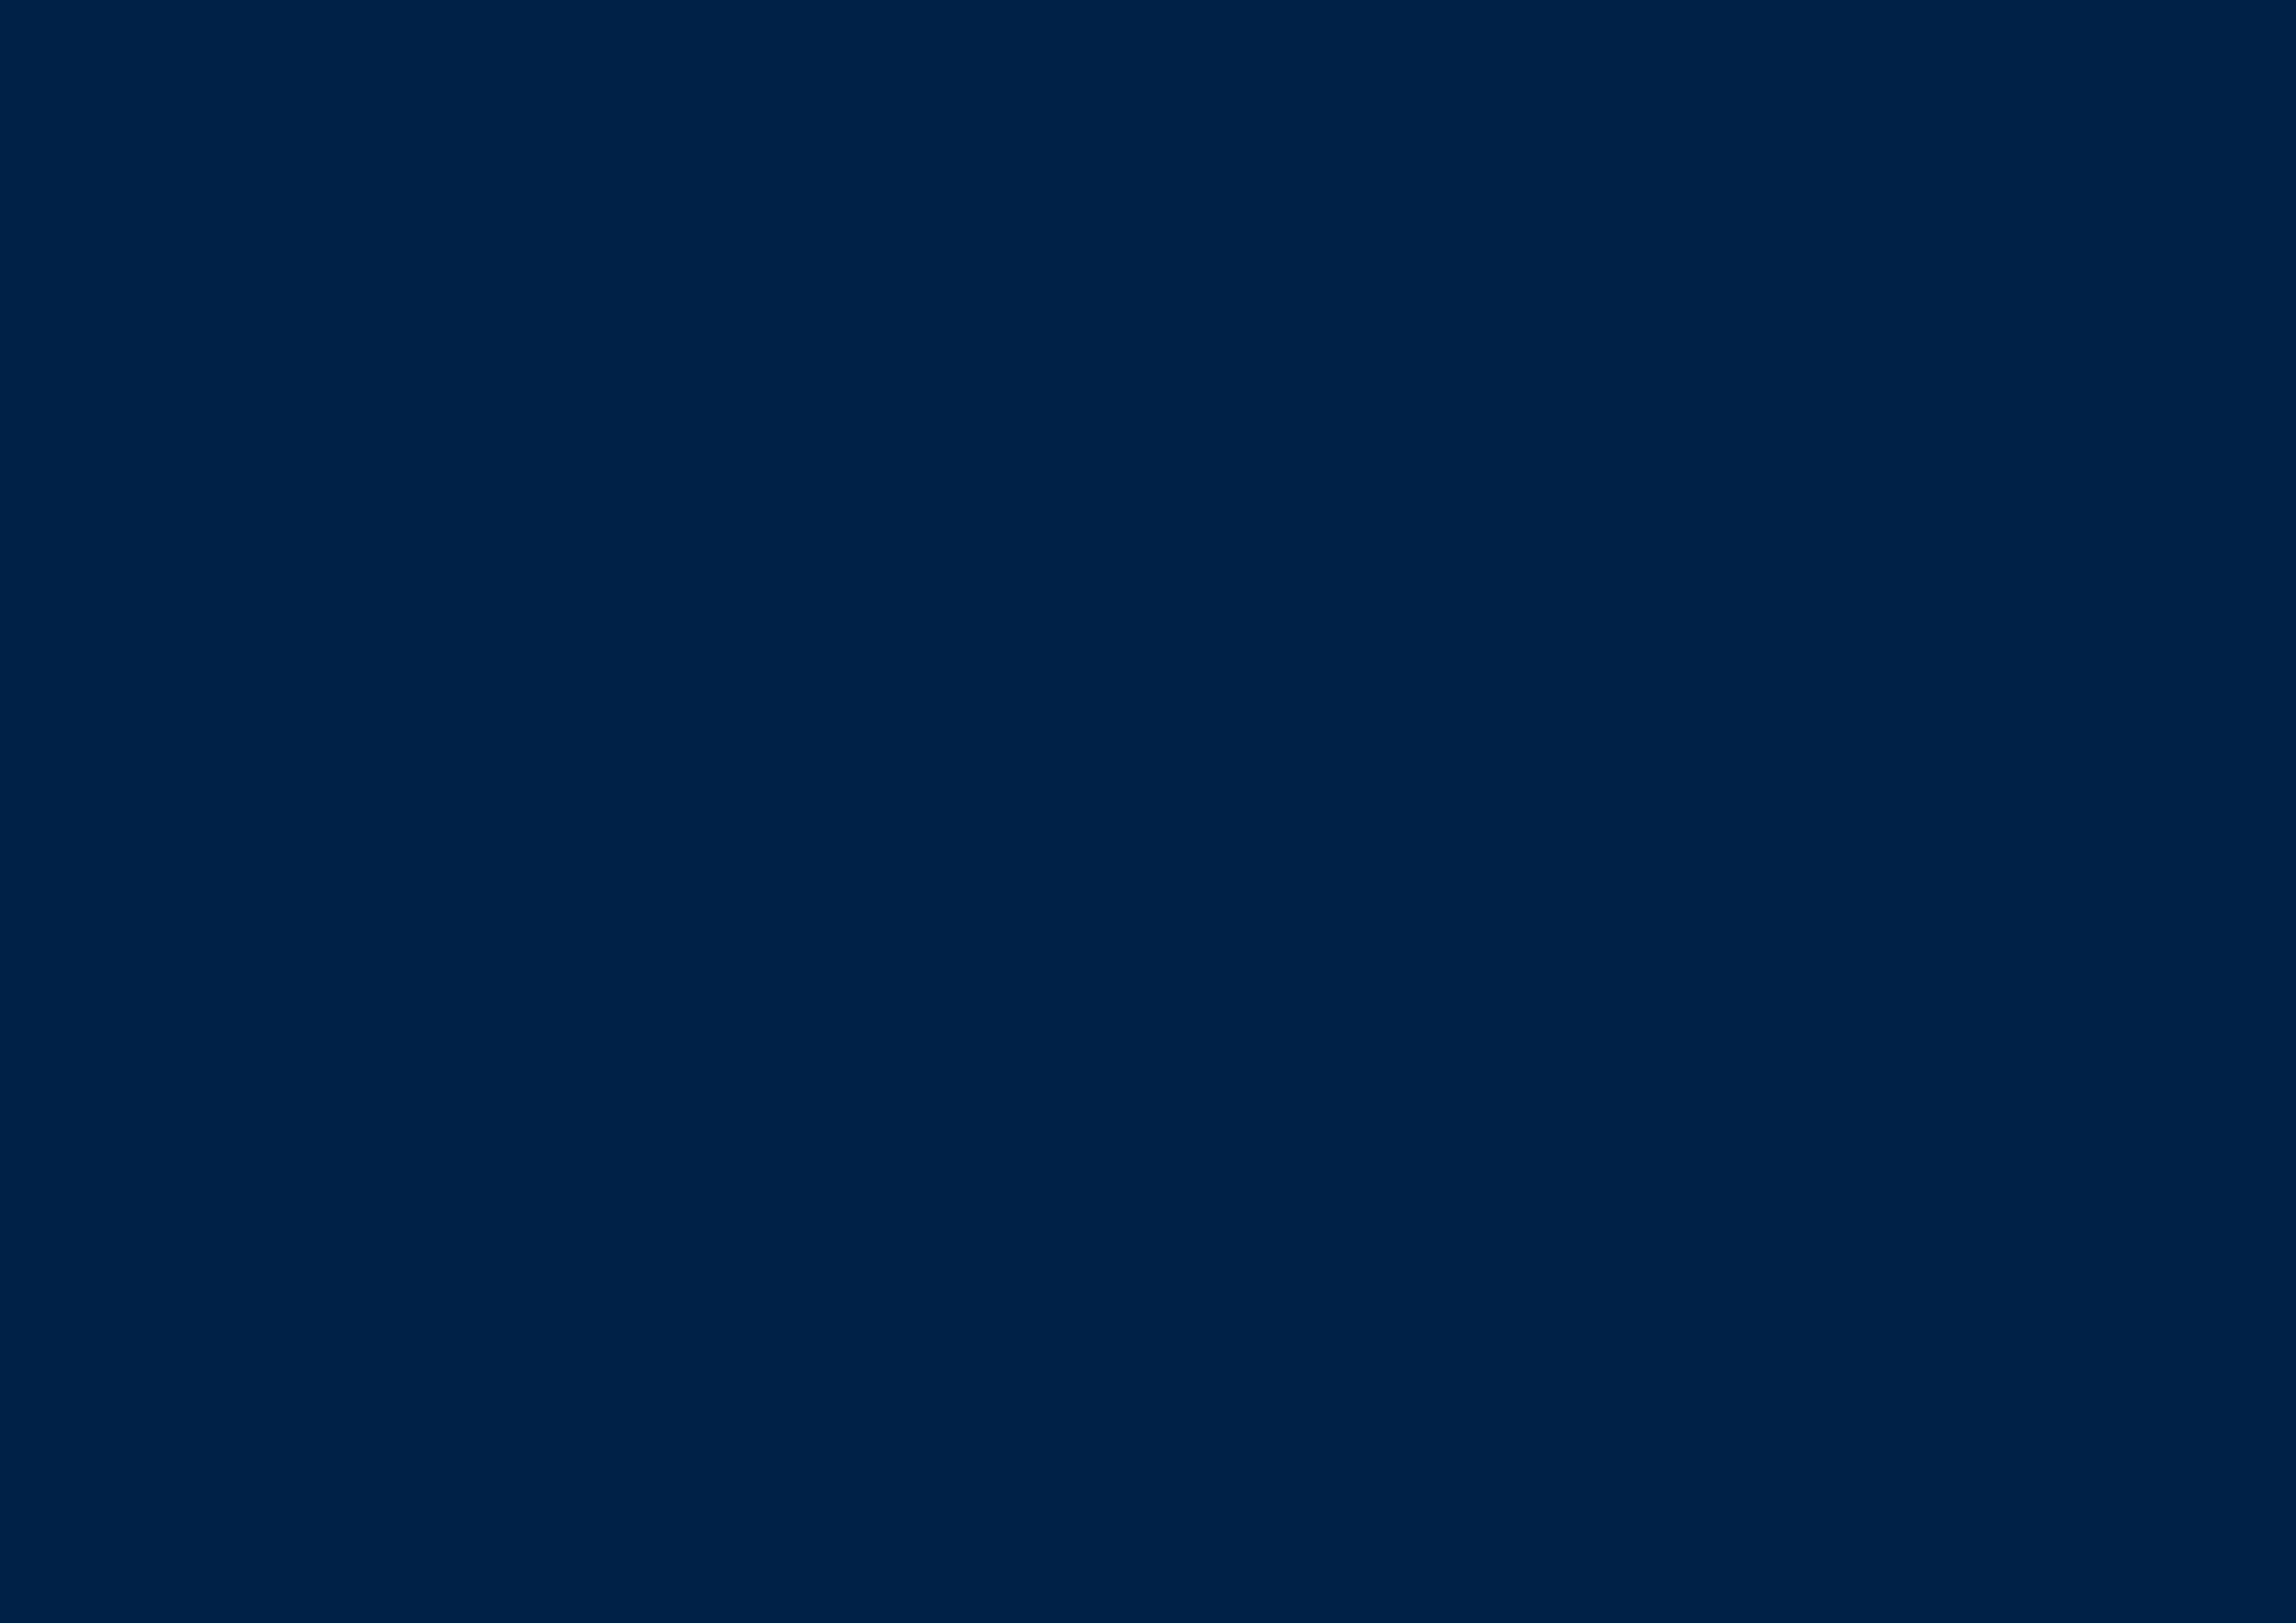 3508x2480 Oxford Blue Solid Color Background